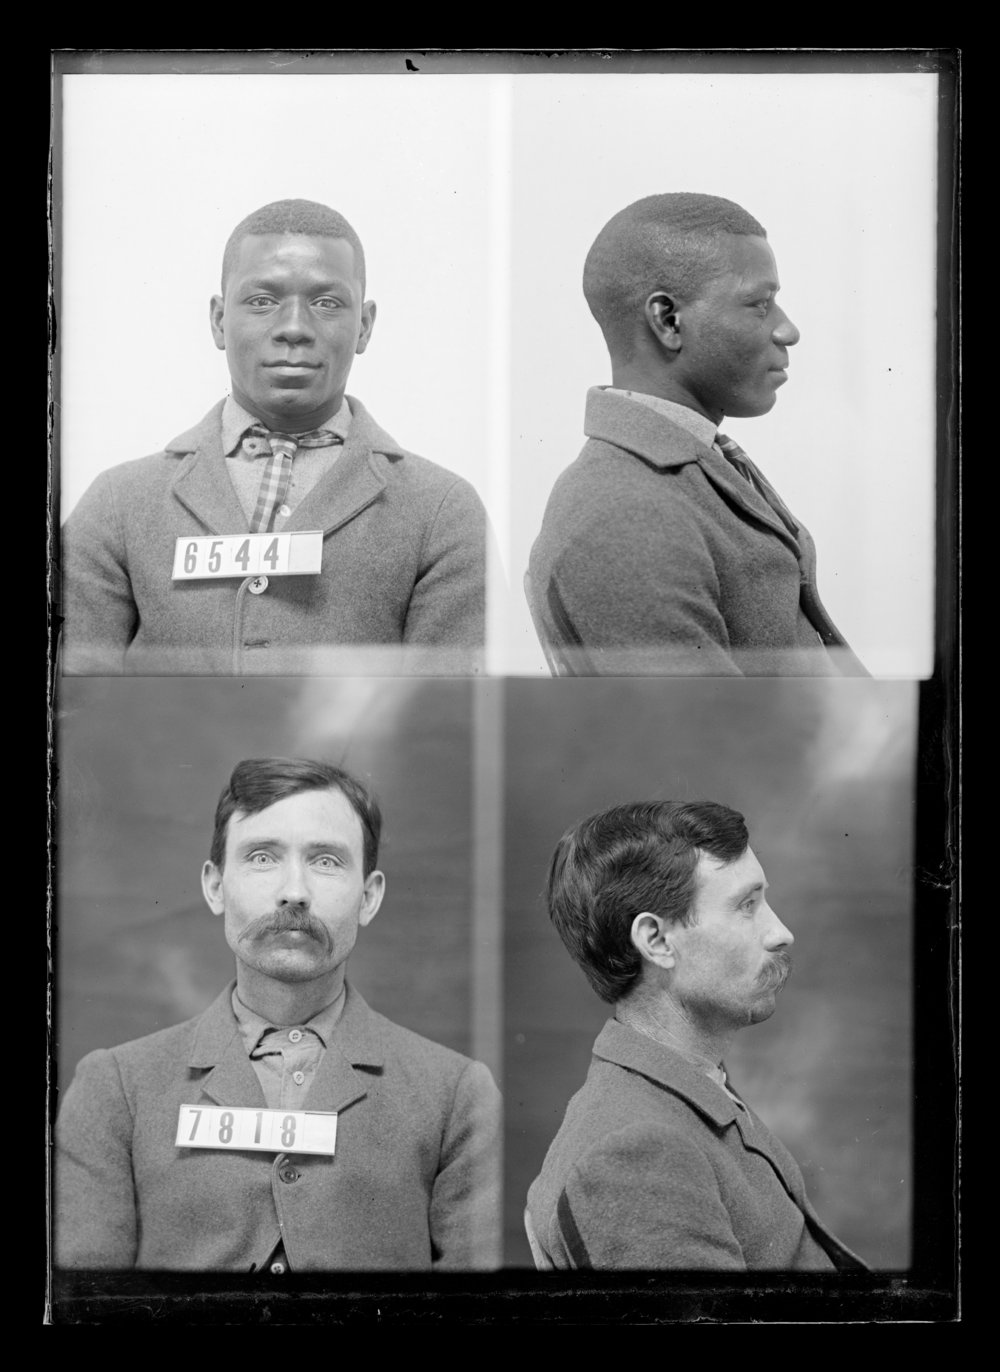 Newman Brown and Art Kates, prisoners 7818 and 6544, Kansas State Penitentiary